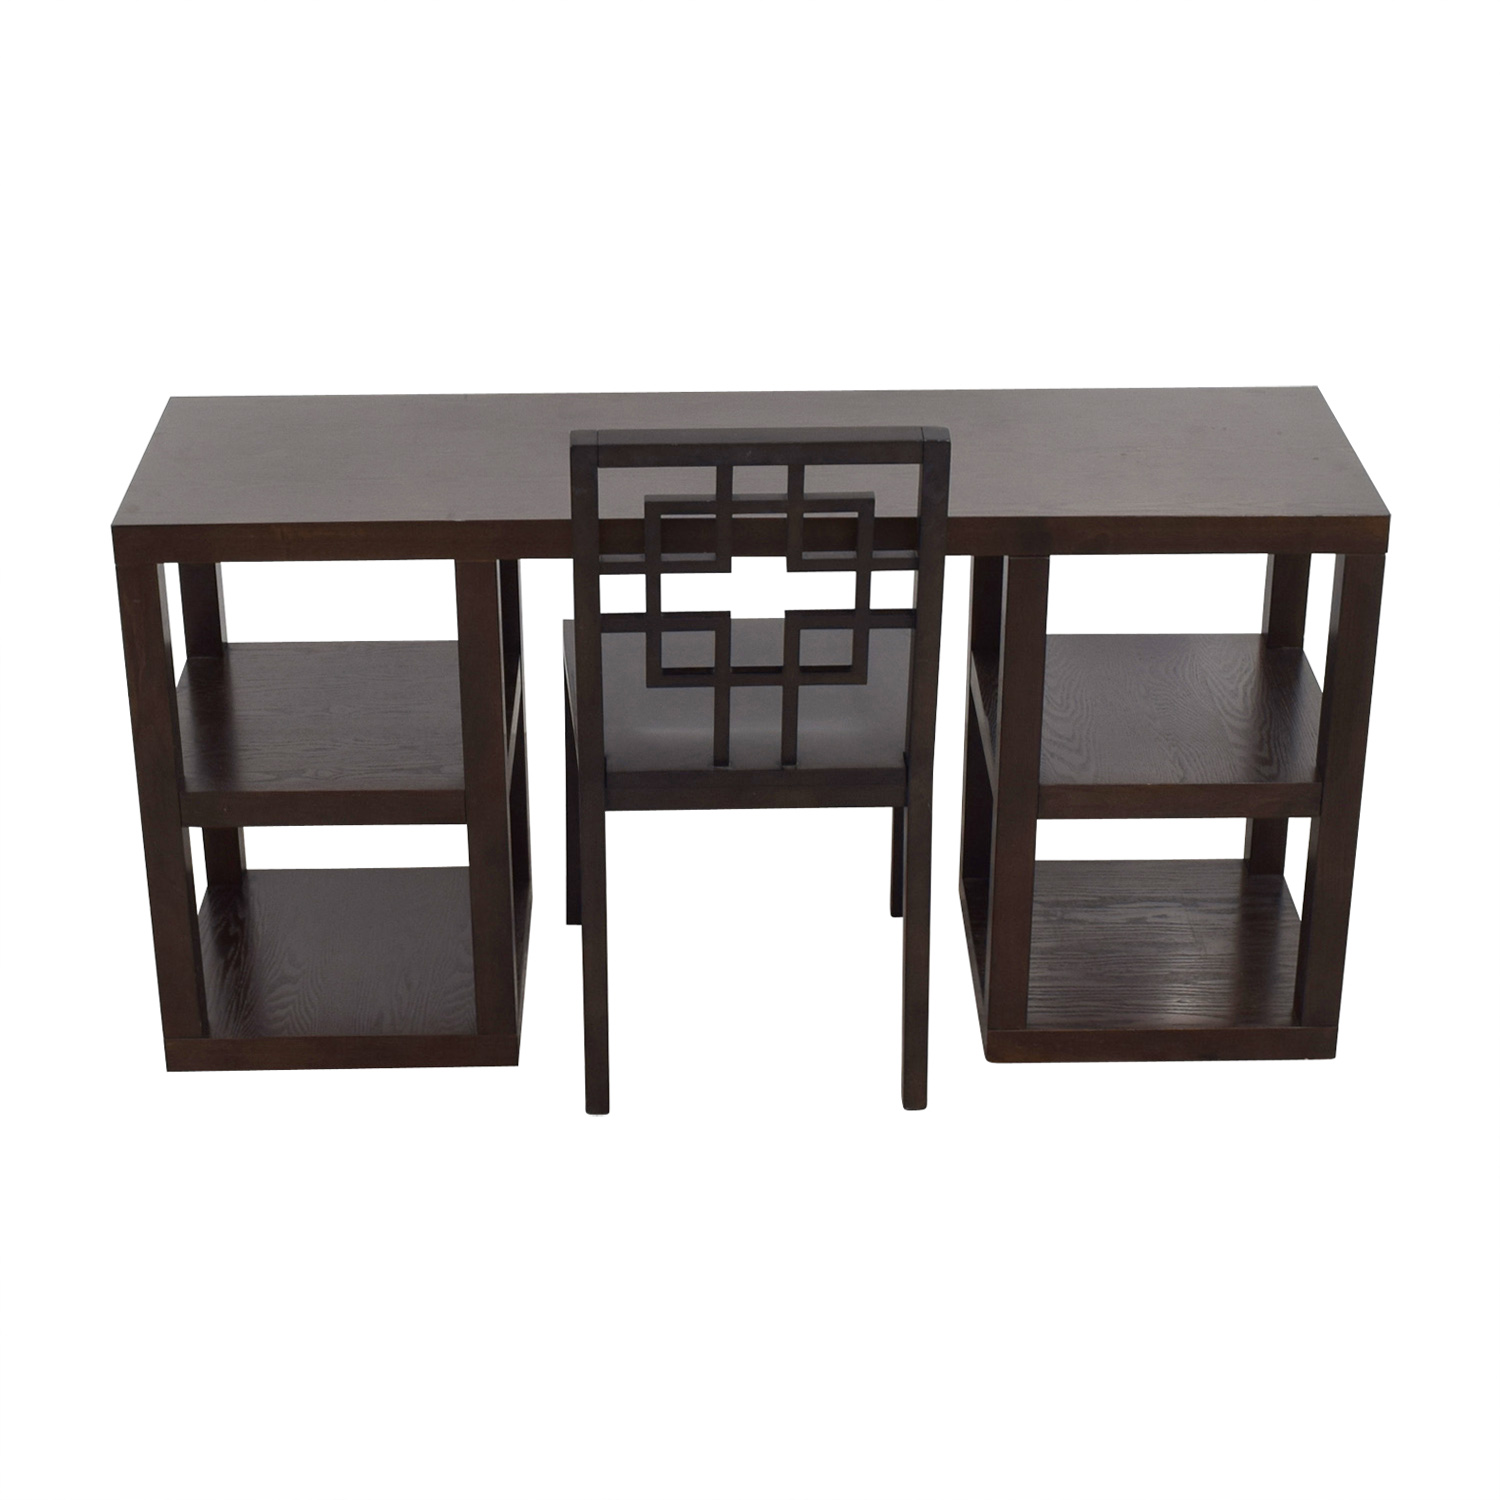 West Elm Wood Desk with Shelves and Chair / Sofas